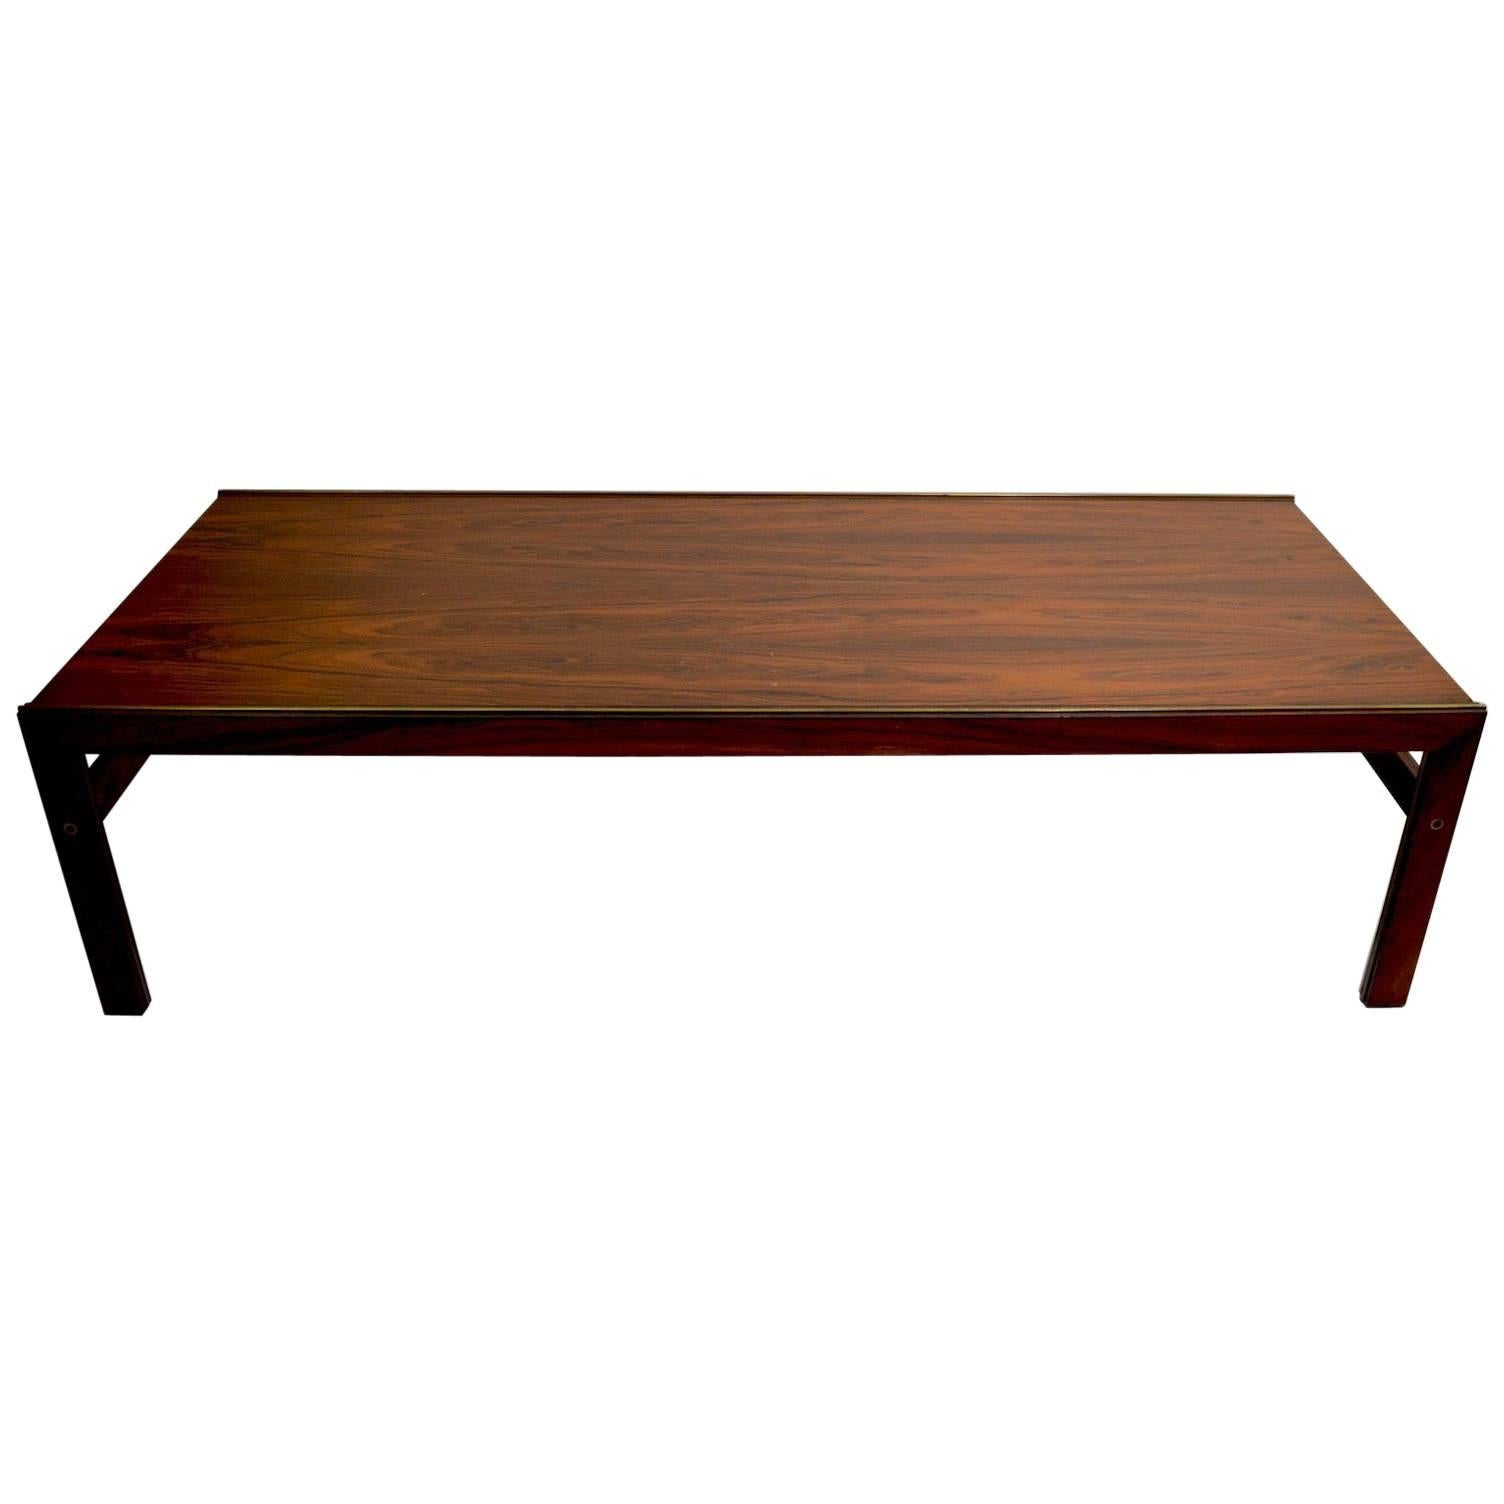 Danish Rosewood Coffee Table by CFC Silkeborg Attributed to Illum Wikkelsø